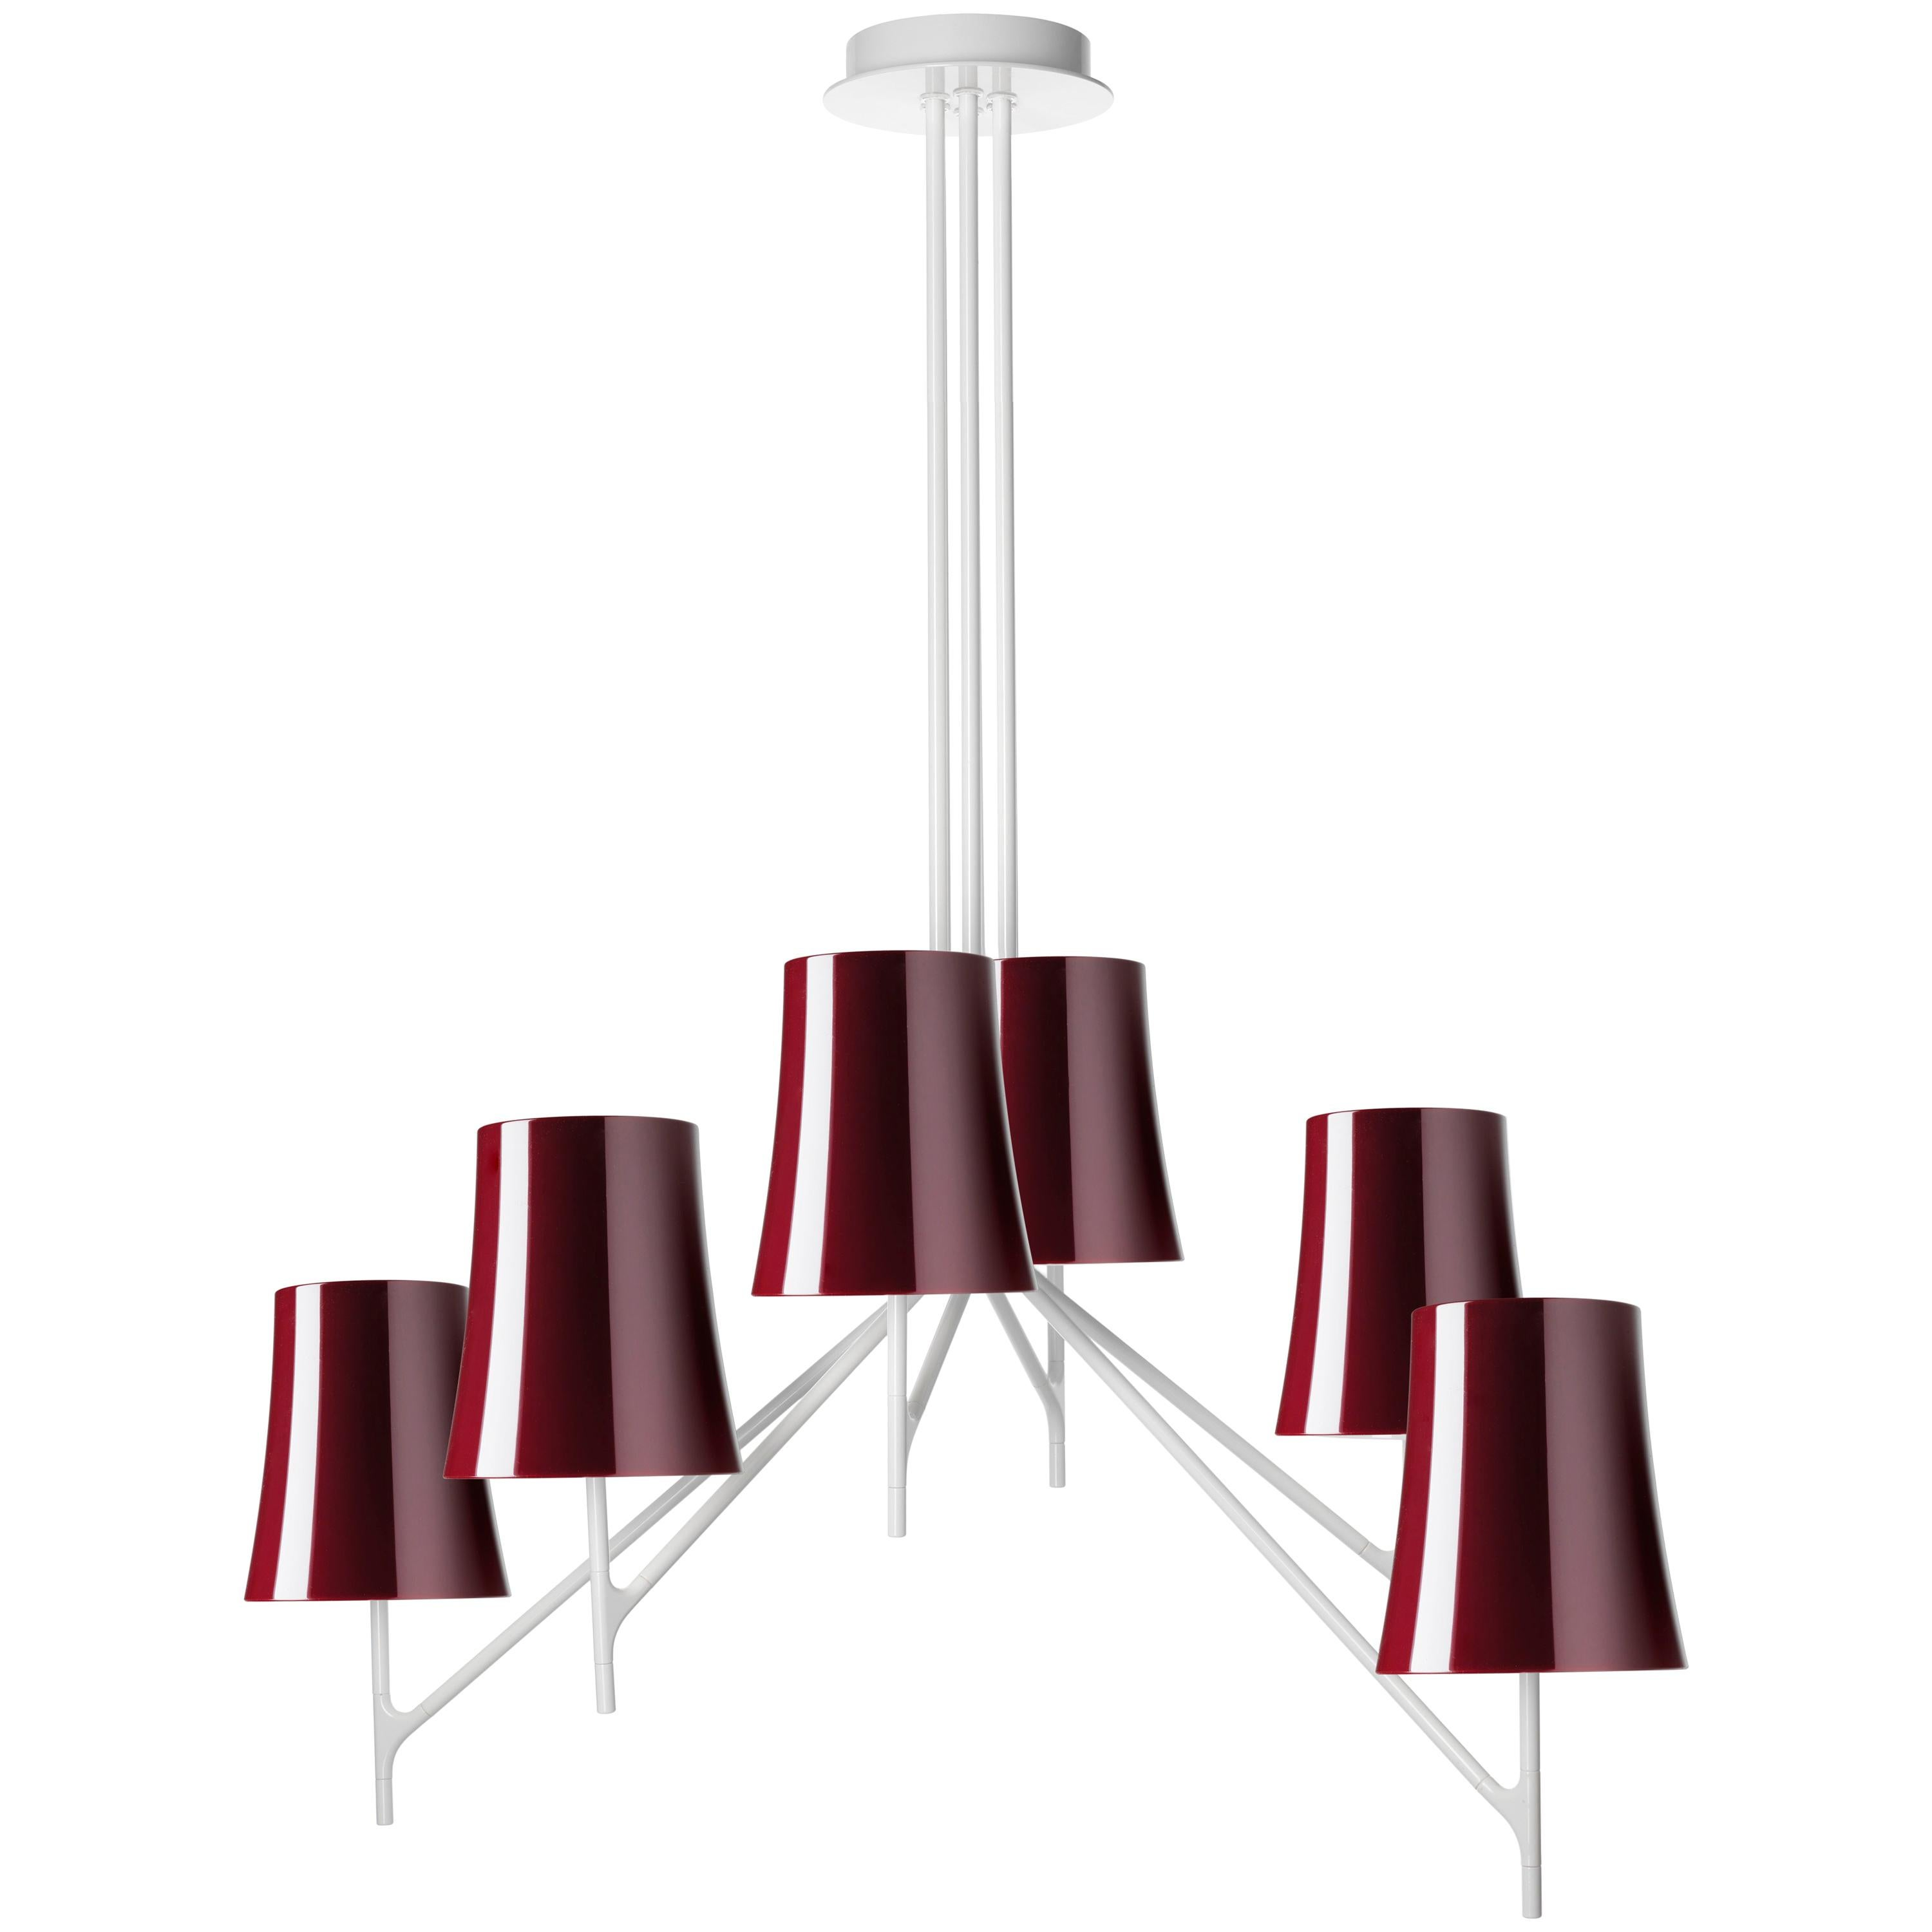 Foscarini Birdie 6 Chandelier in Amaranth by Ludovica and Roberto Palomba